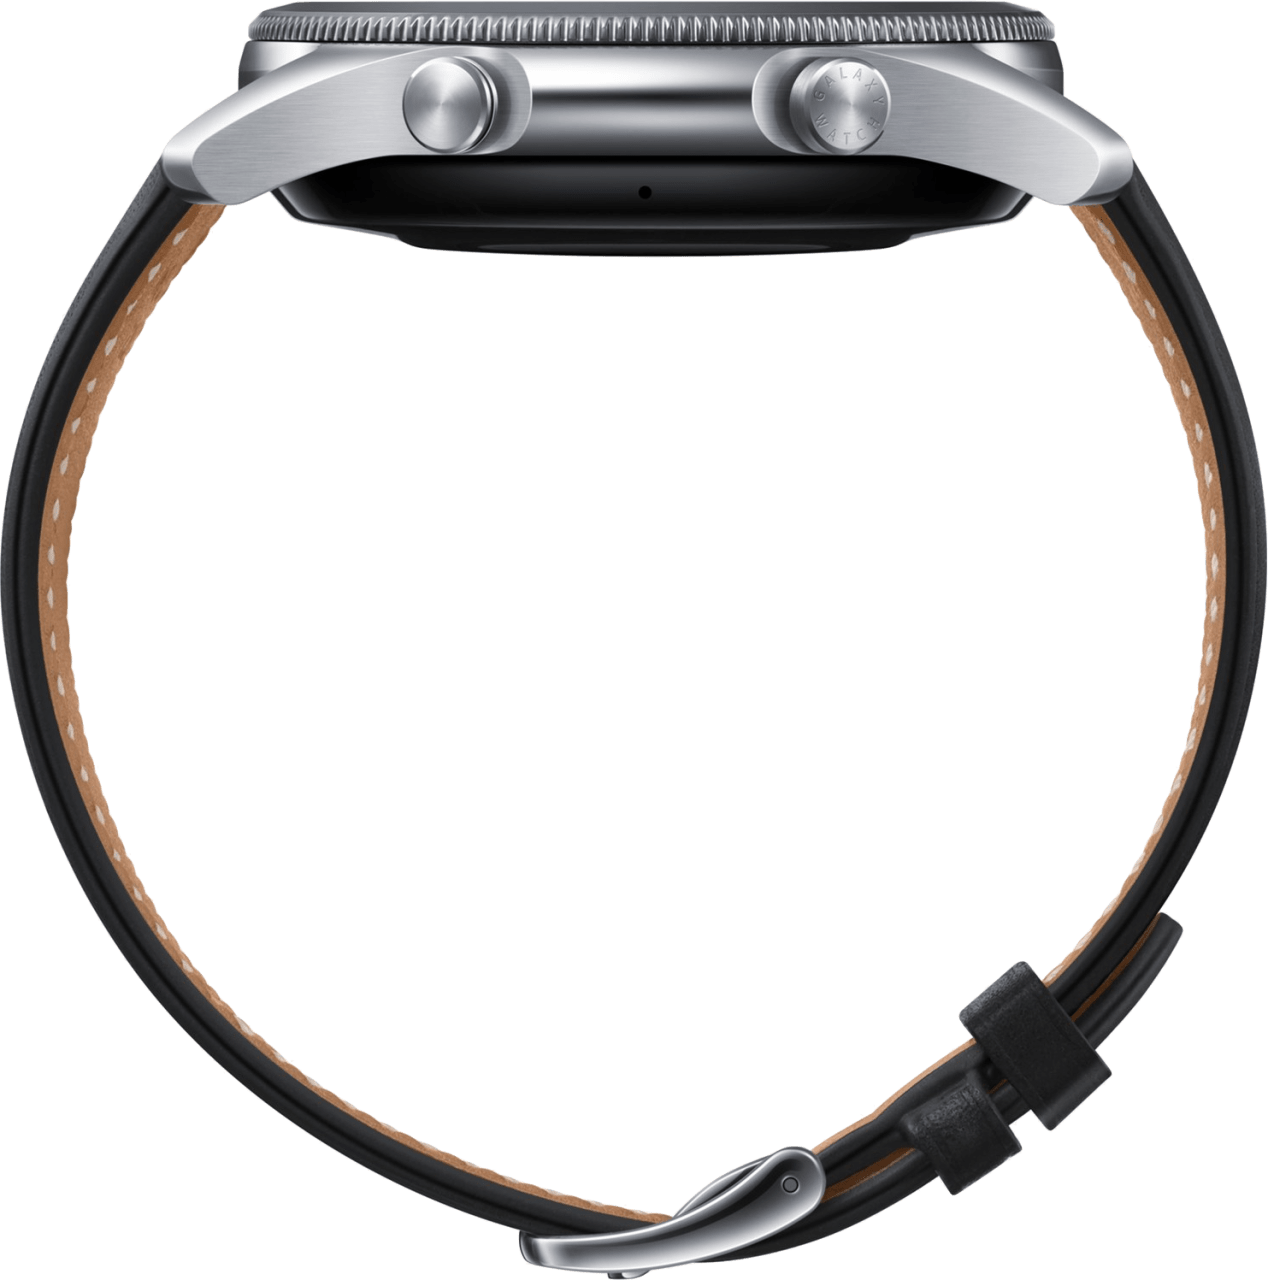 Mystic Zilver Samsung Galaxy Watch3, 45mm Stainless steel case, Real leather band.3